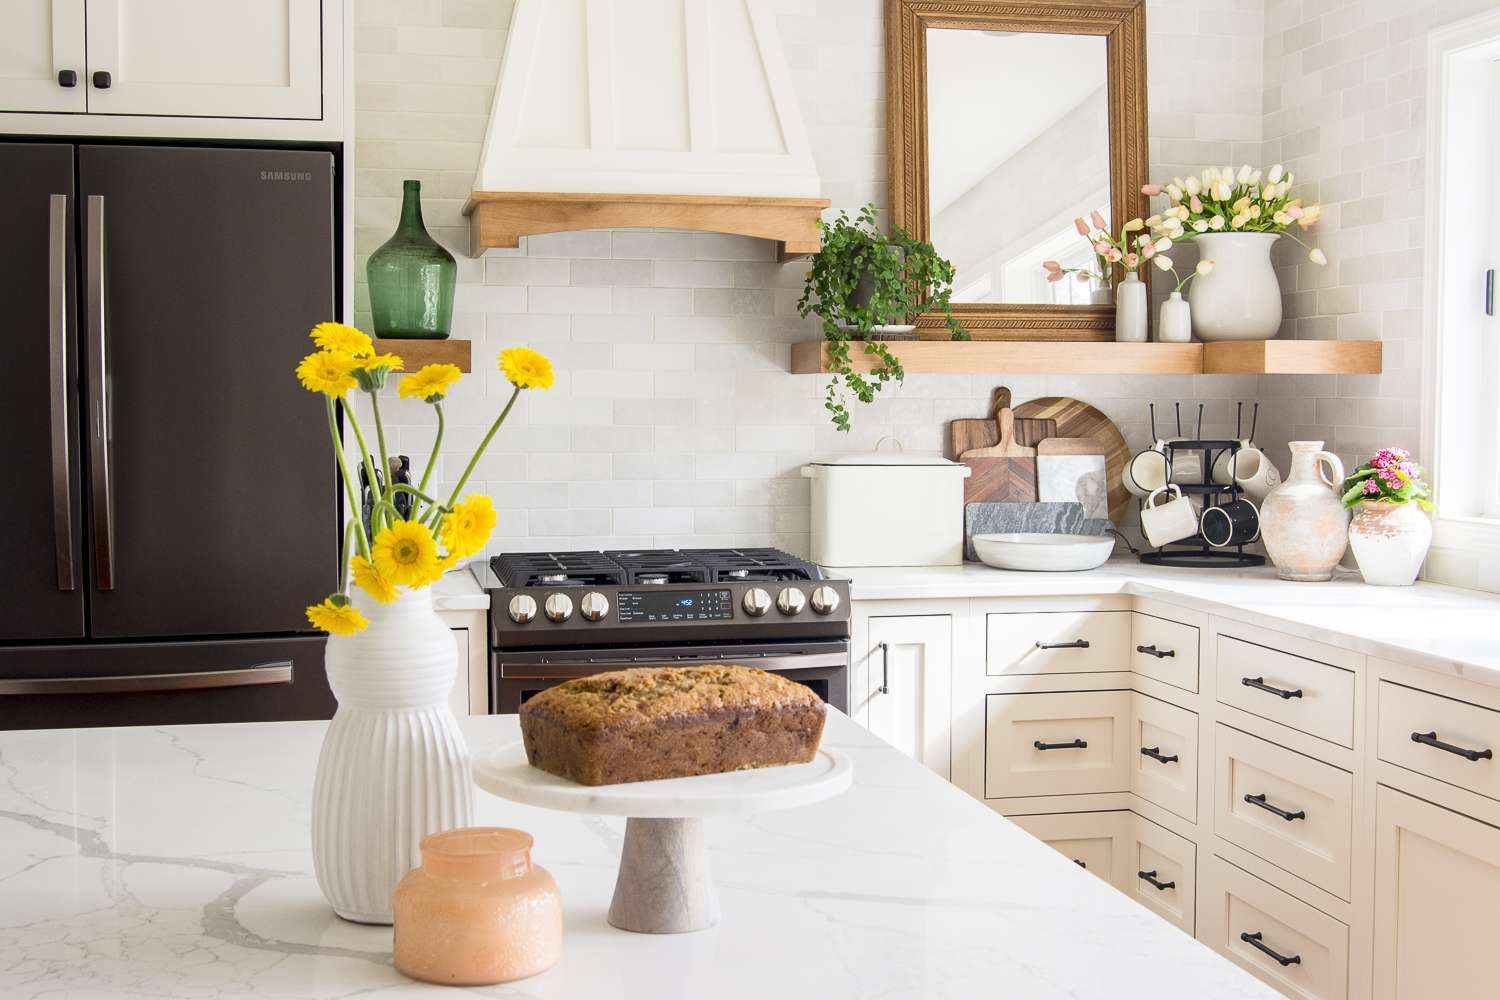 Modern farmhouse kitchen with banana bread.